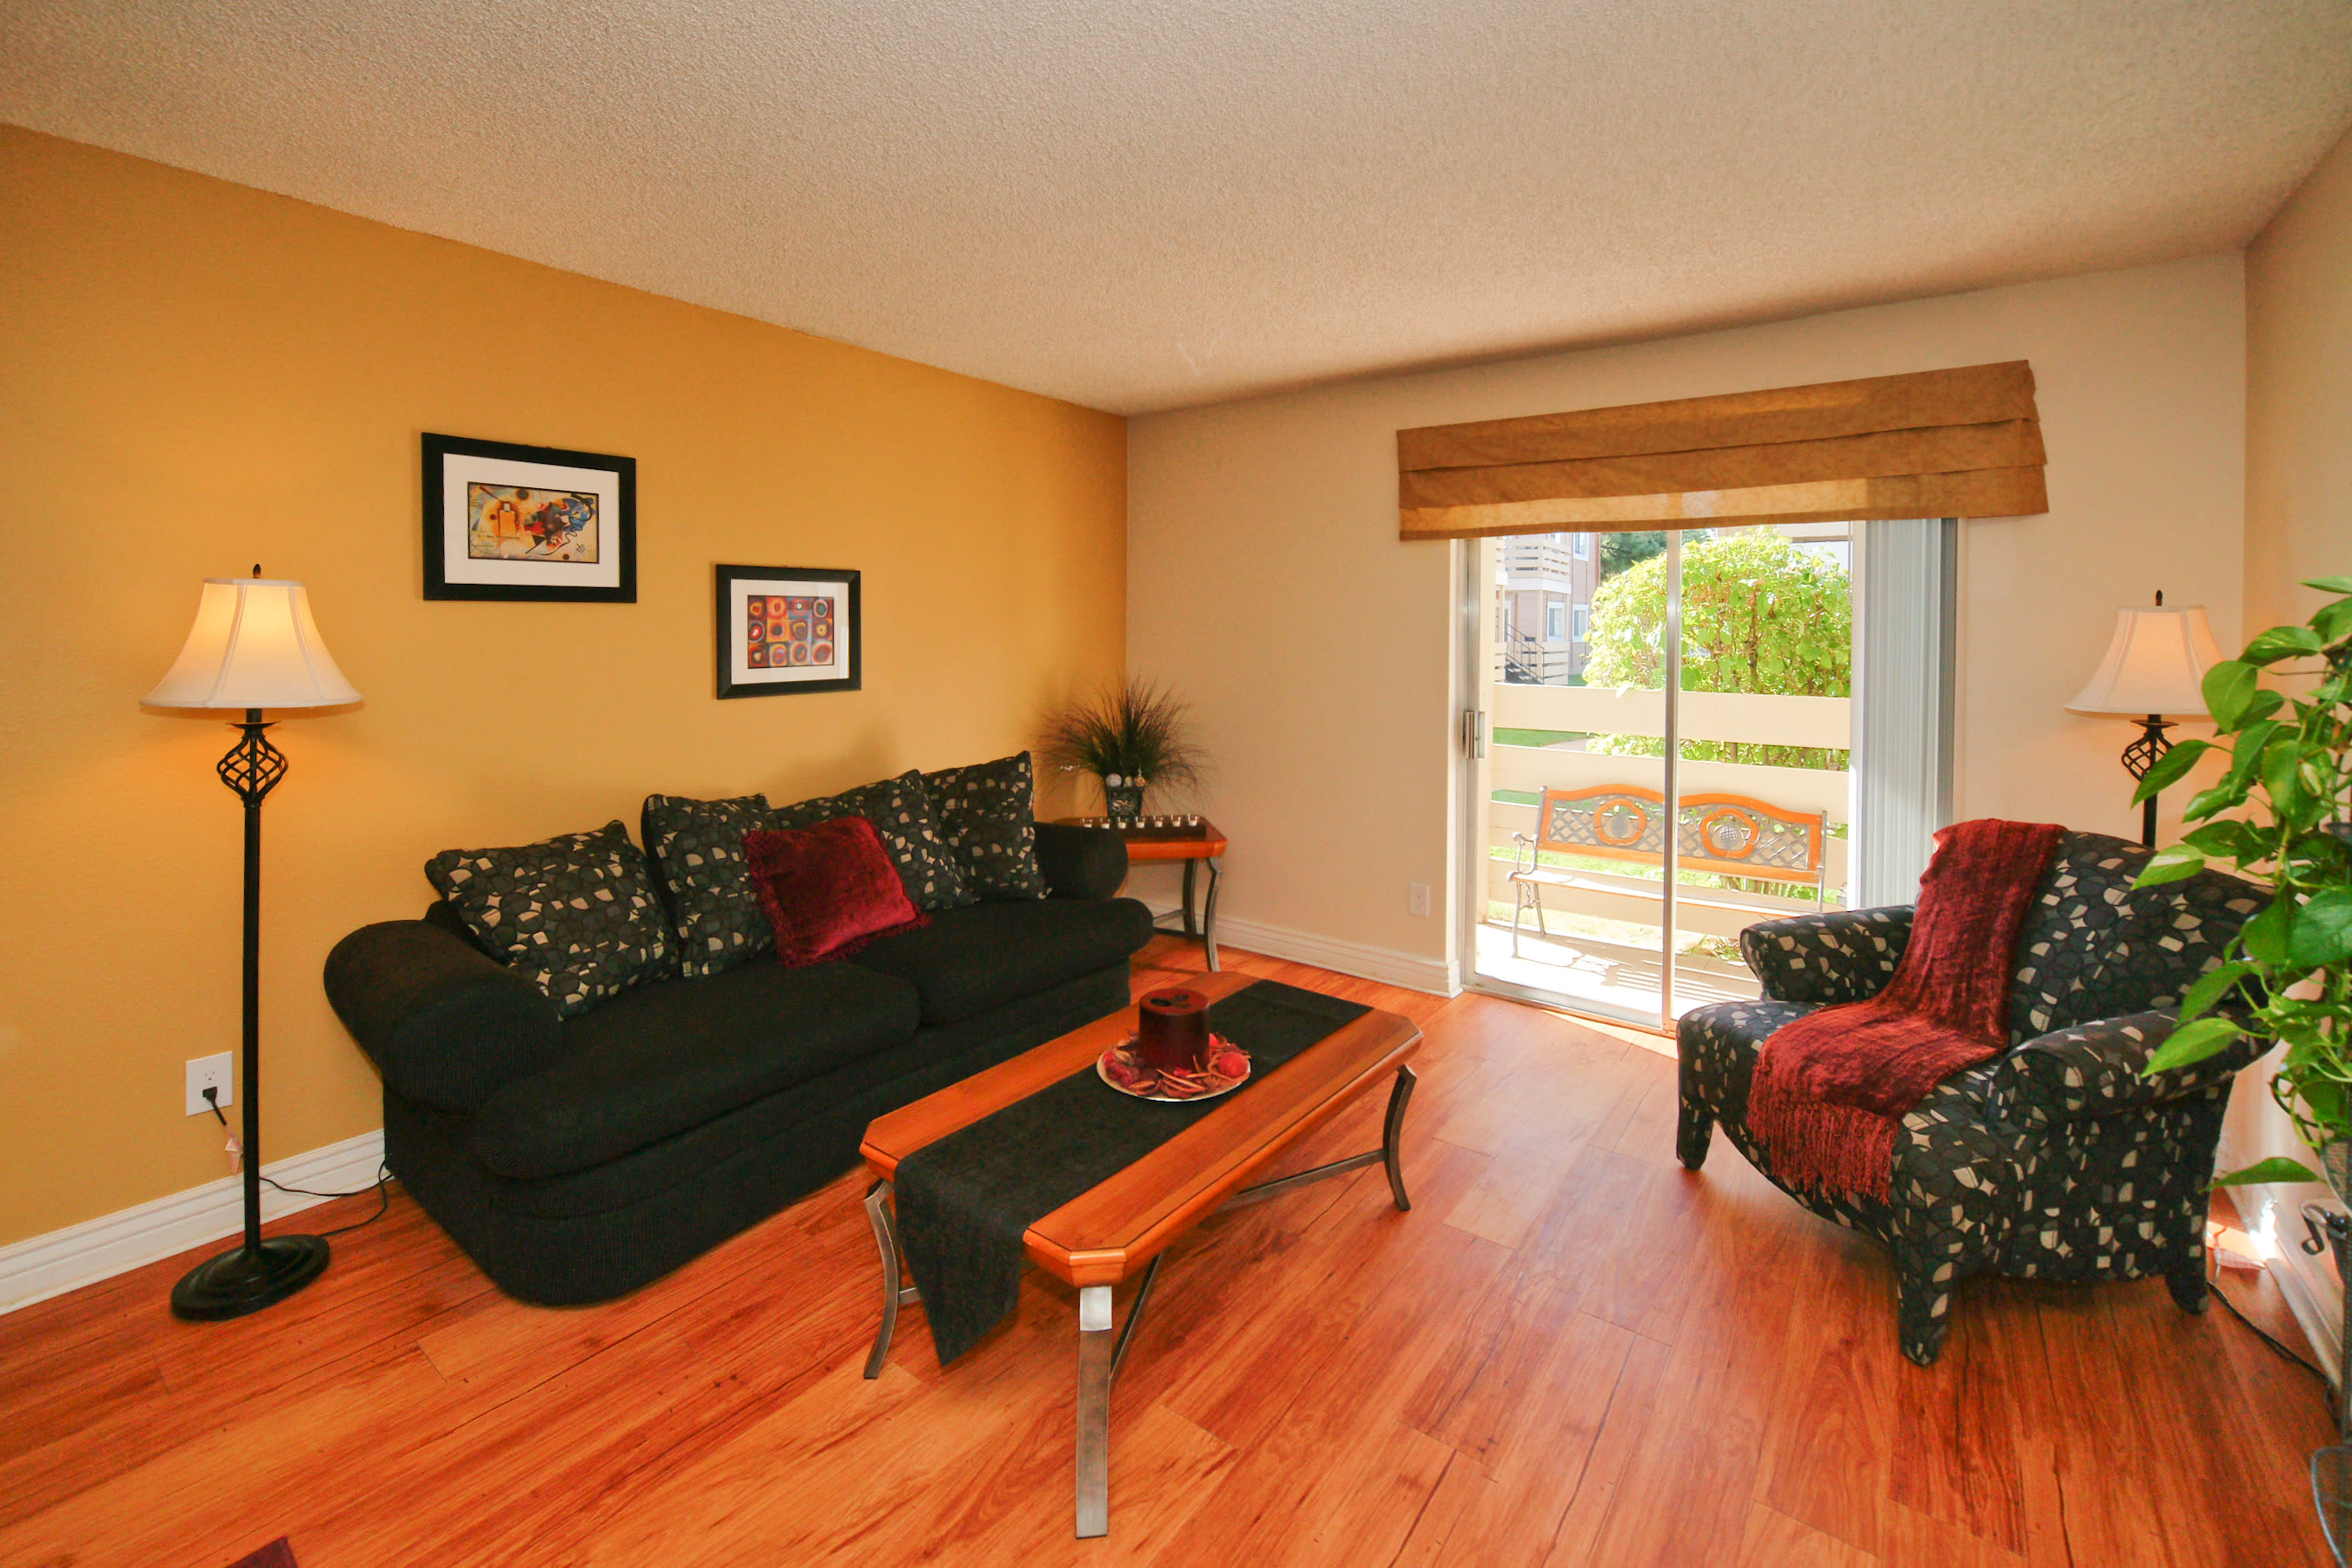 Living room with hardwood floors at Hampden Heights Apartments in Denver, Colorado